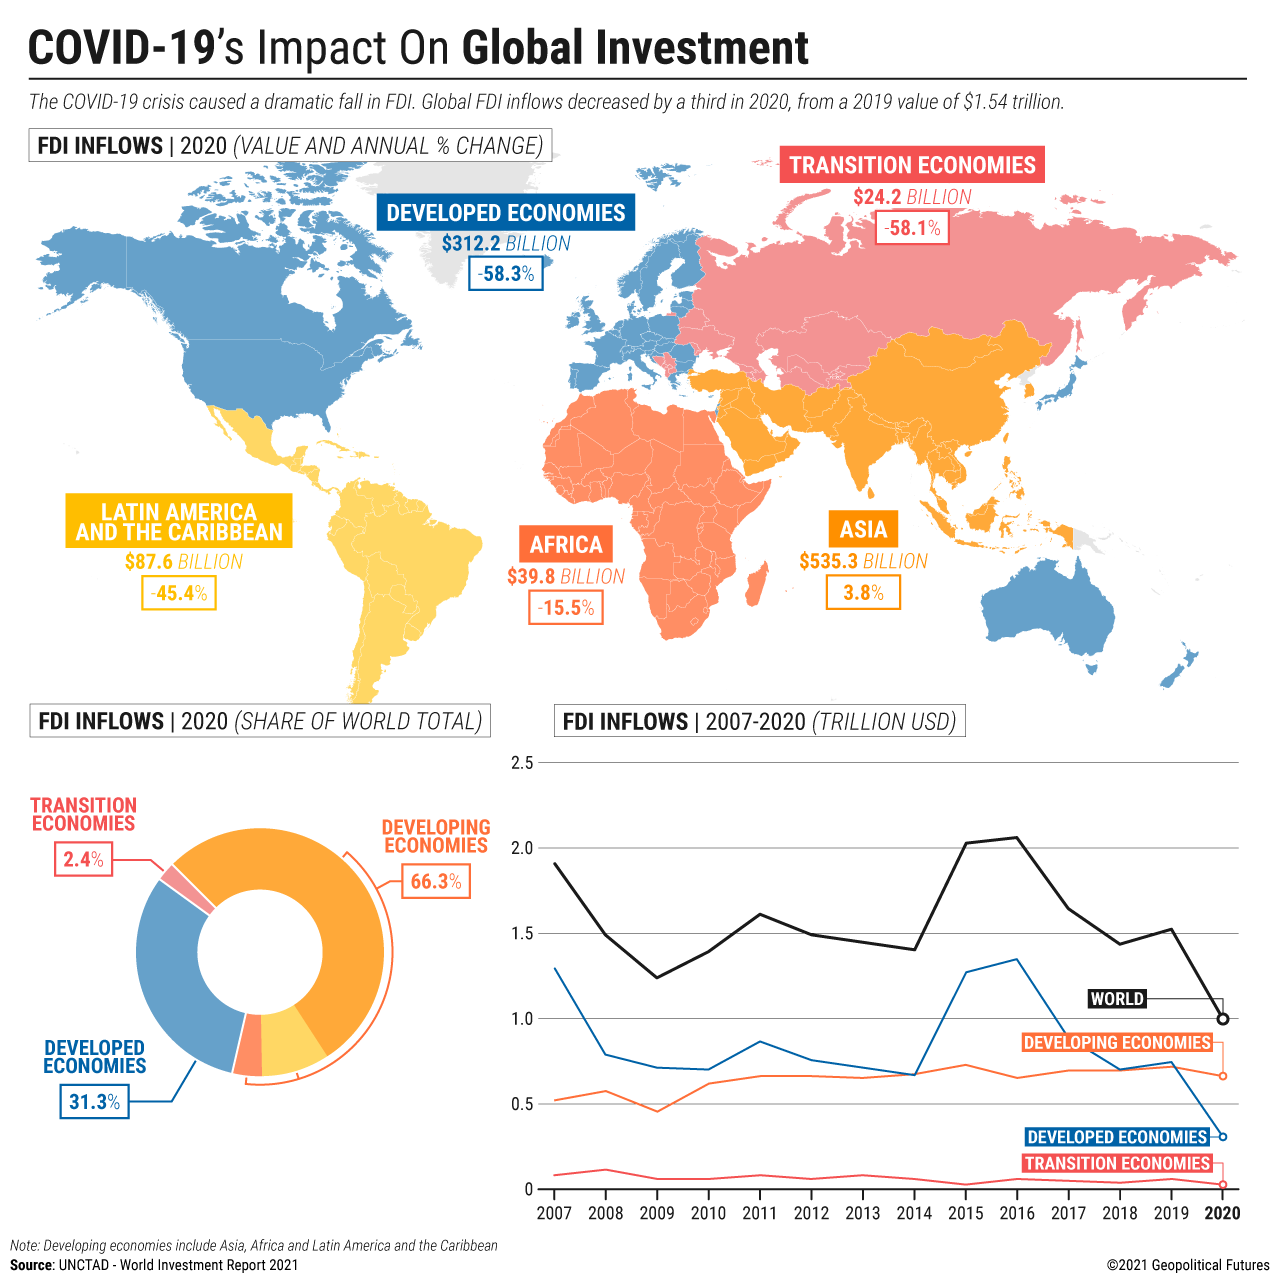 COVID-19's Impact on Global Investment